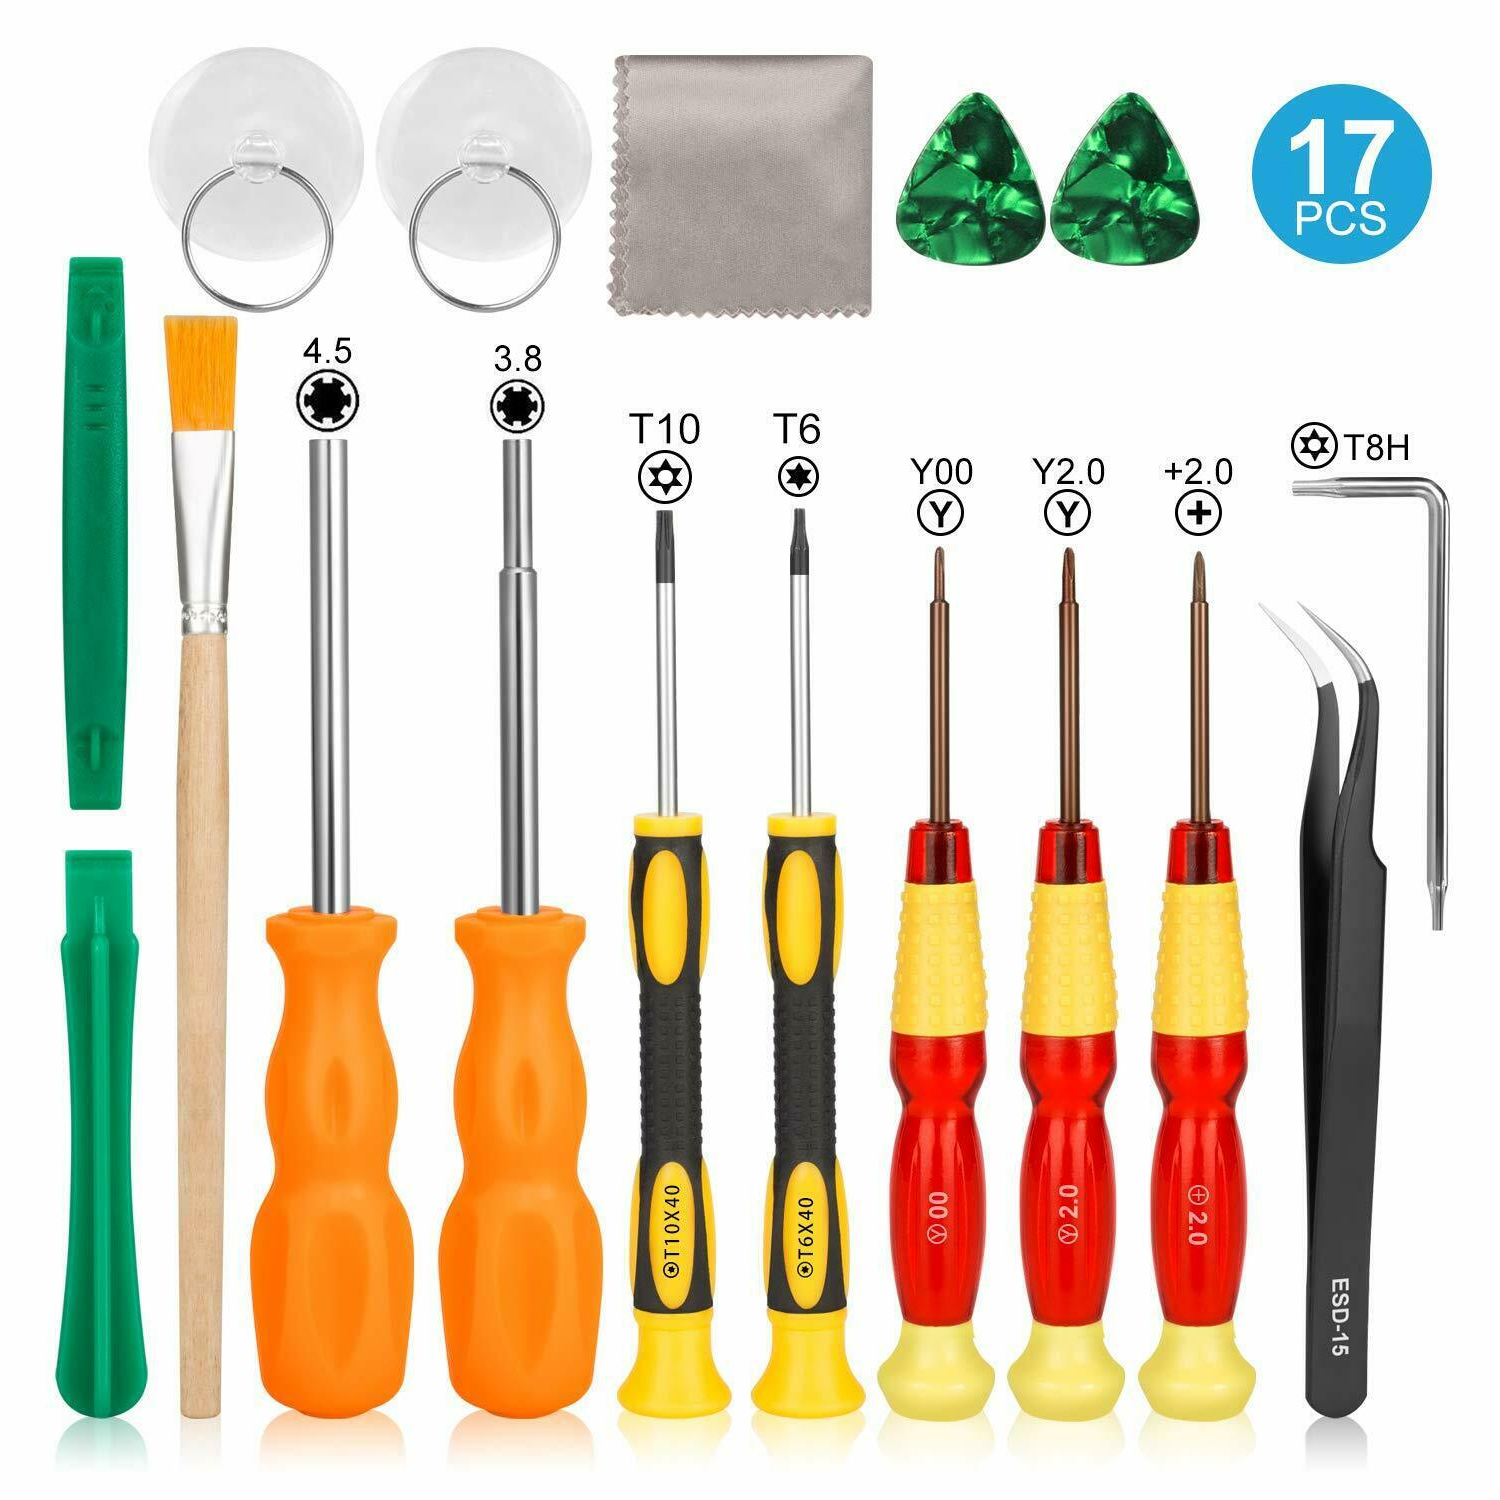 Bevigac 17 in 1 Professional Security Game Bit Repair Tools Screwdriver Kit Set for Nintendo Nintend Switch 3DS 2DS Gamecube